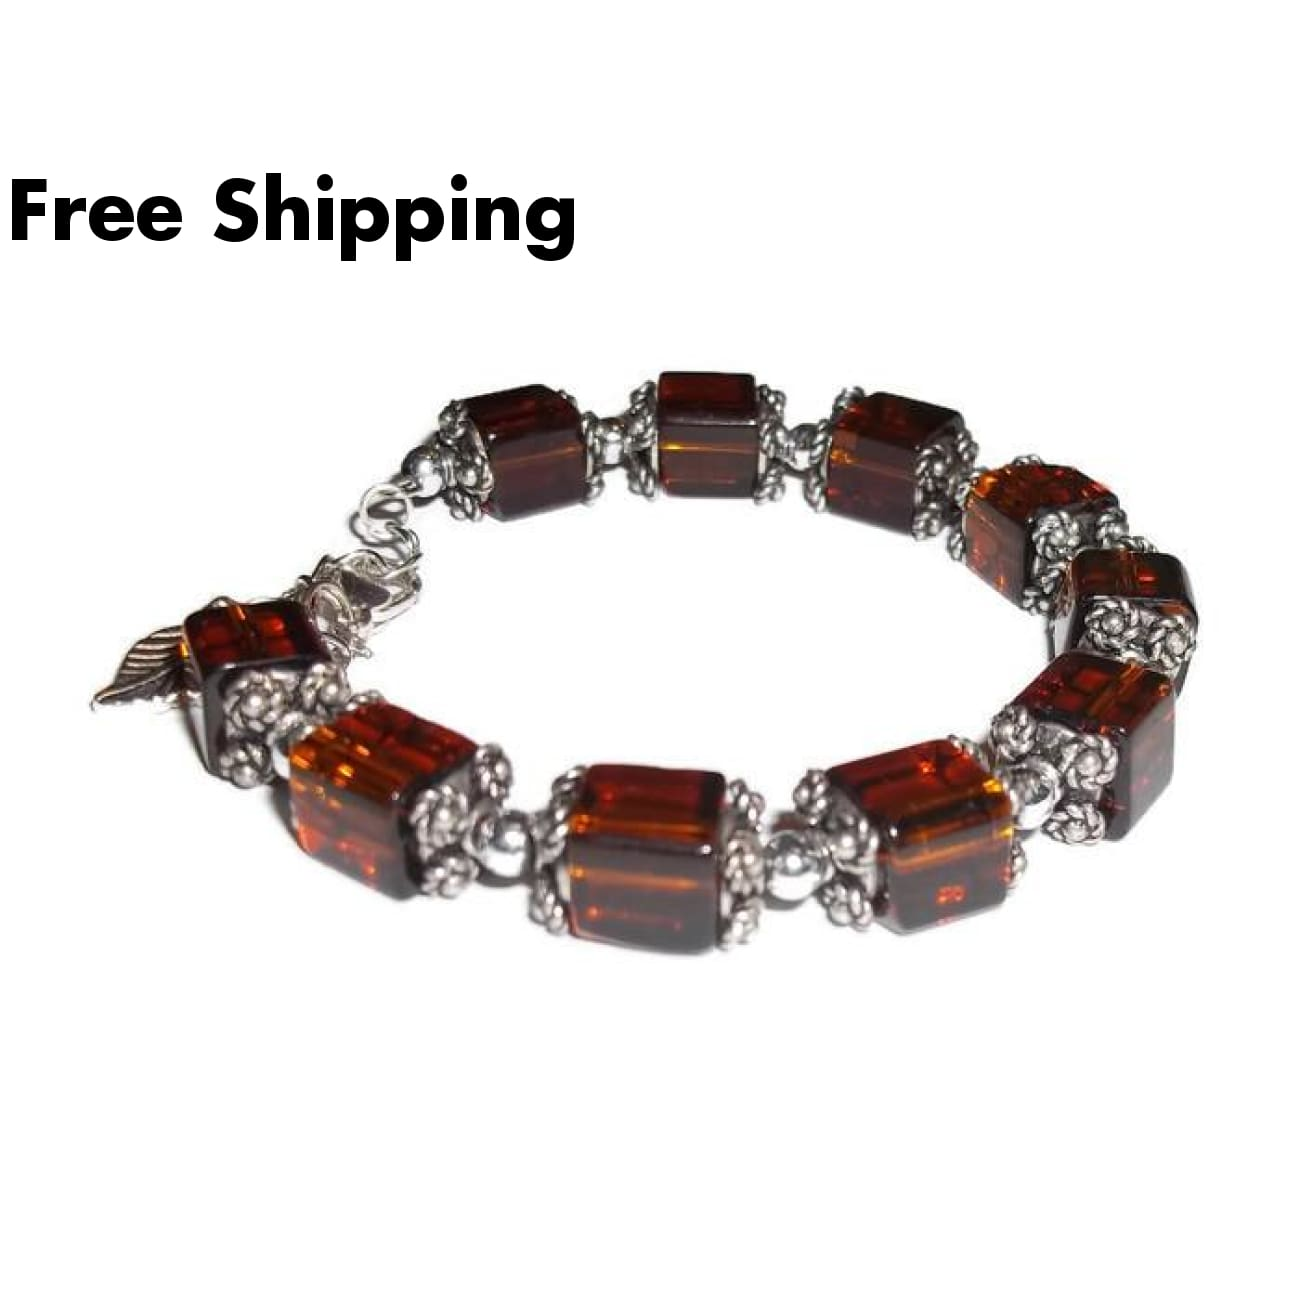 Coffee Square Glass Tibetan Silver Artisan Crafted Statement Bracelet (M) - Bracelets